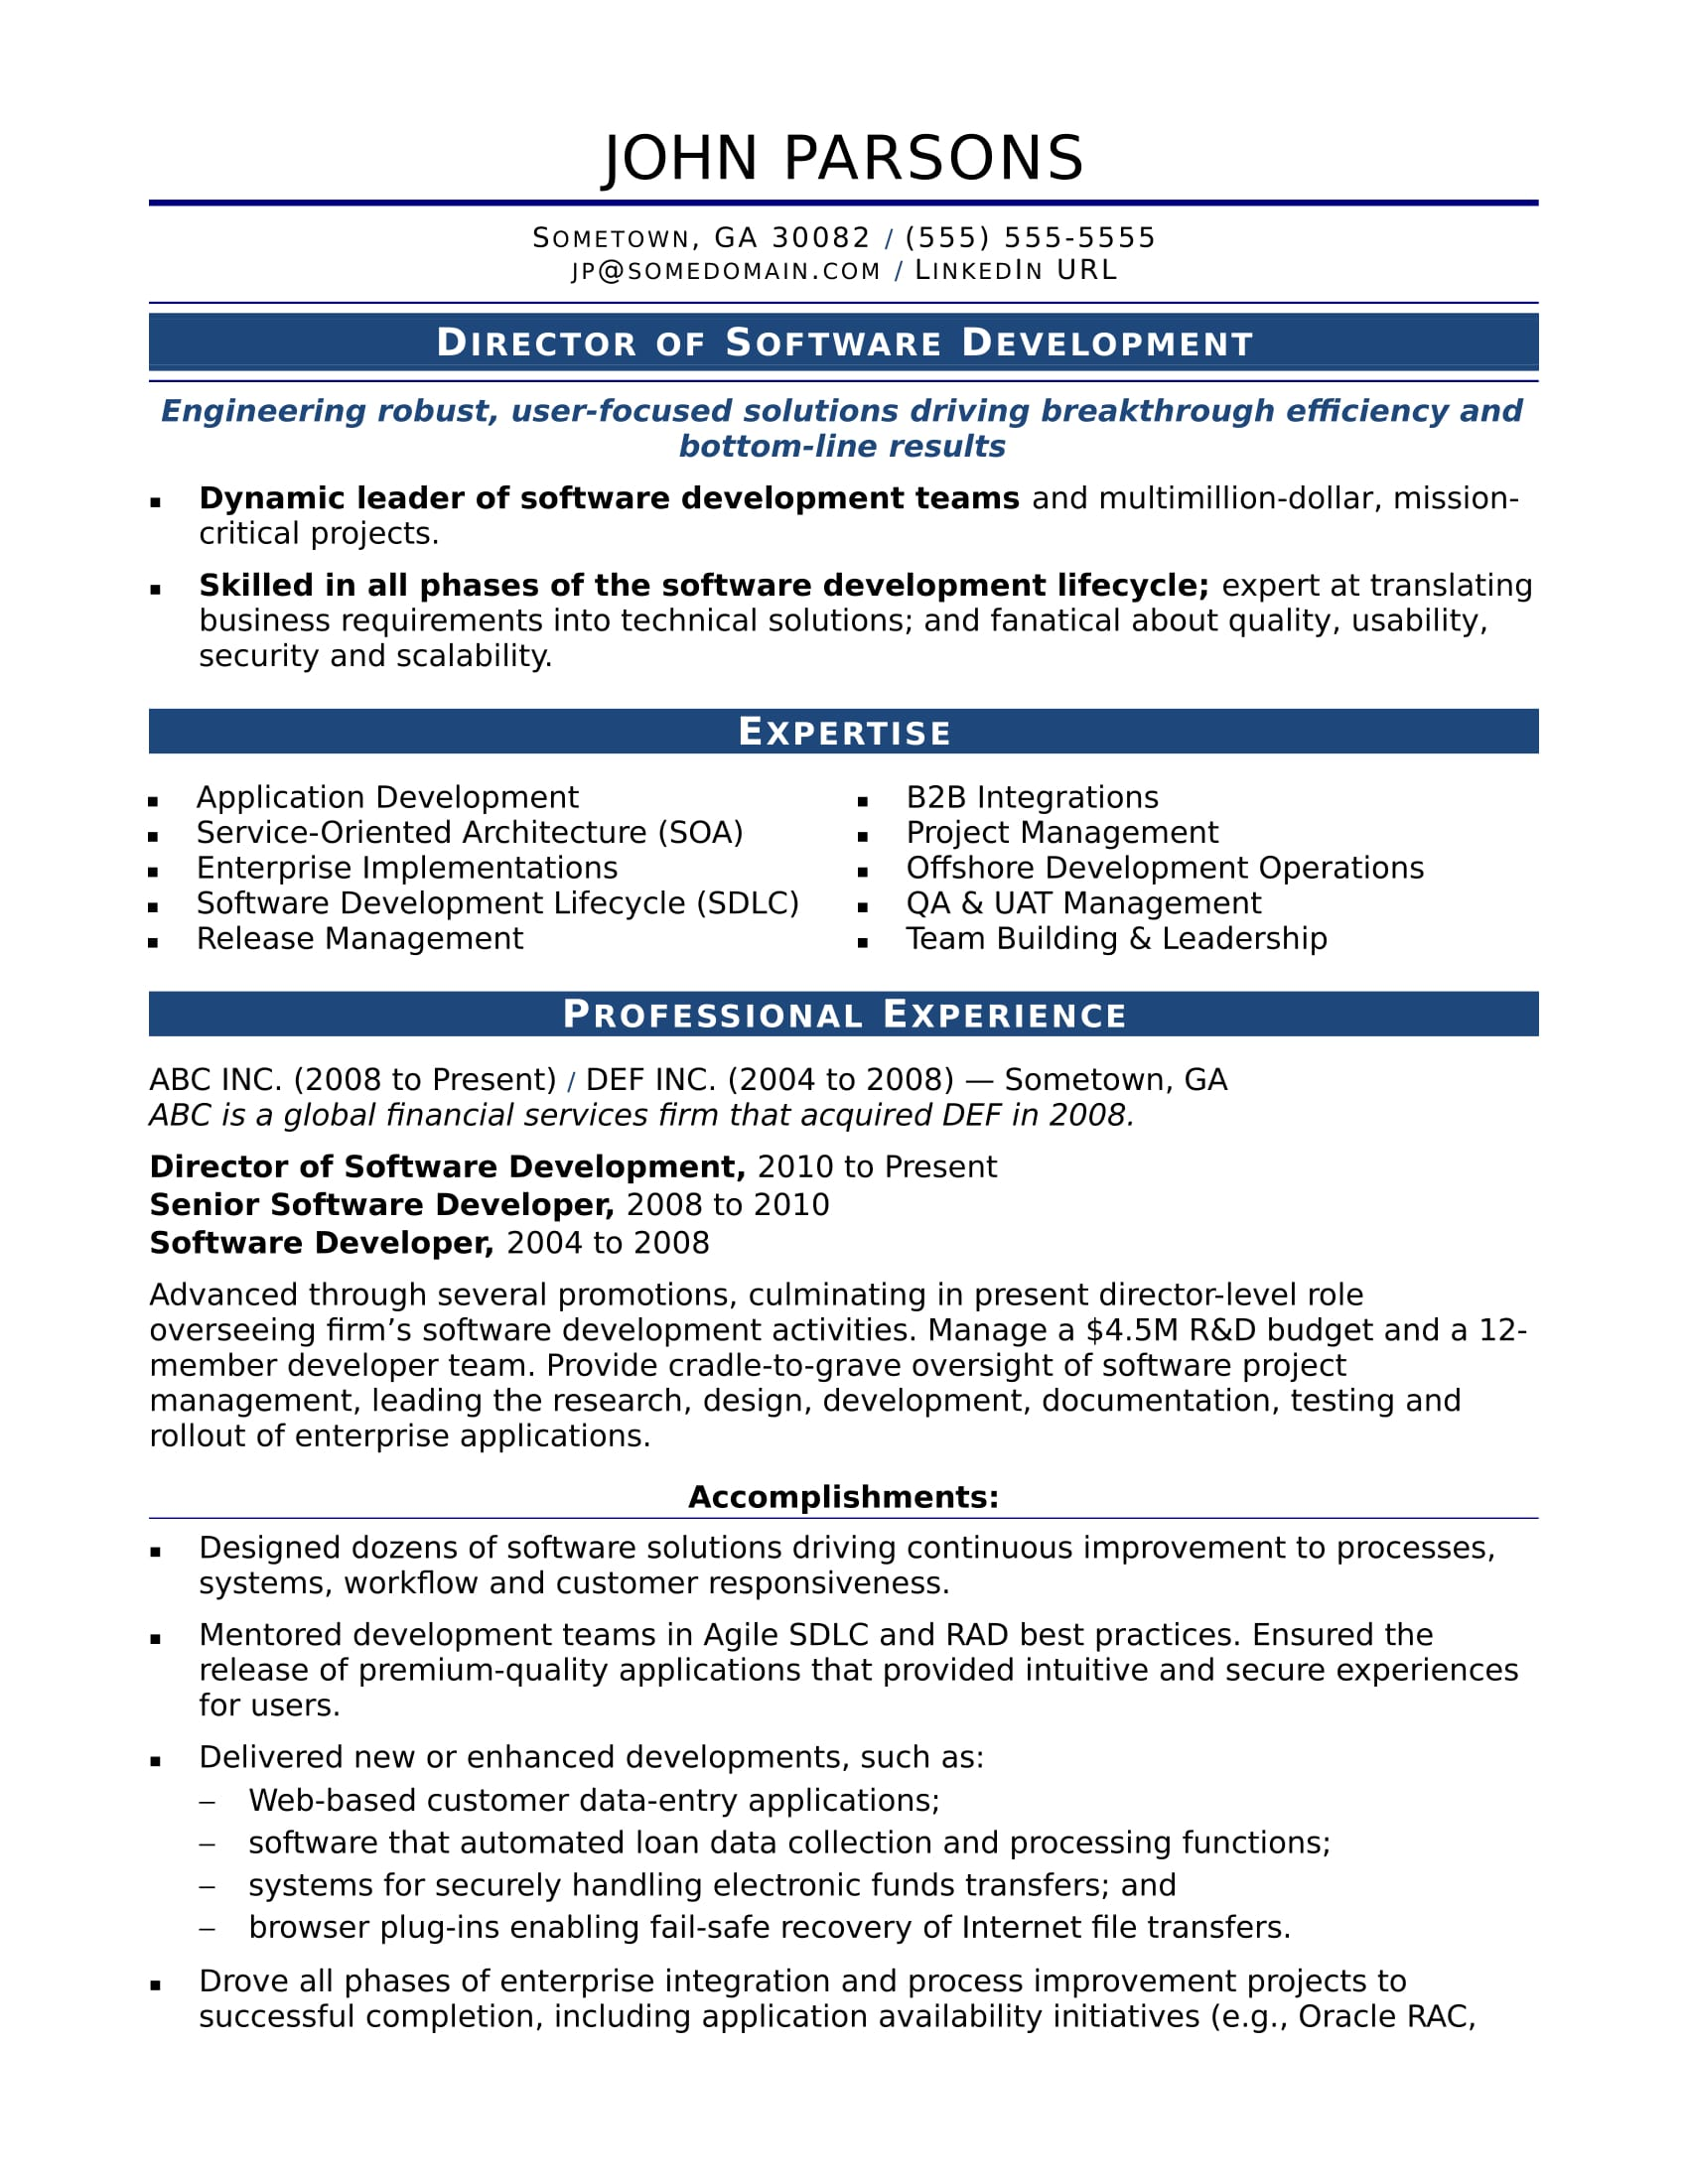 Sample Resume For An Experienced IT Developer